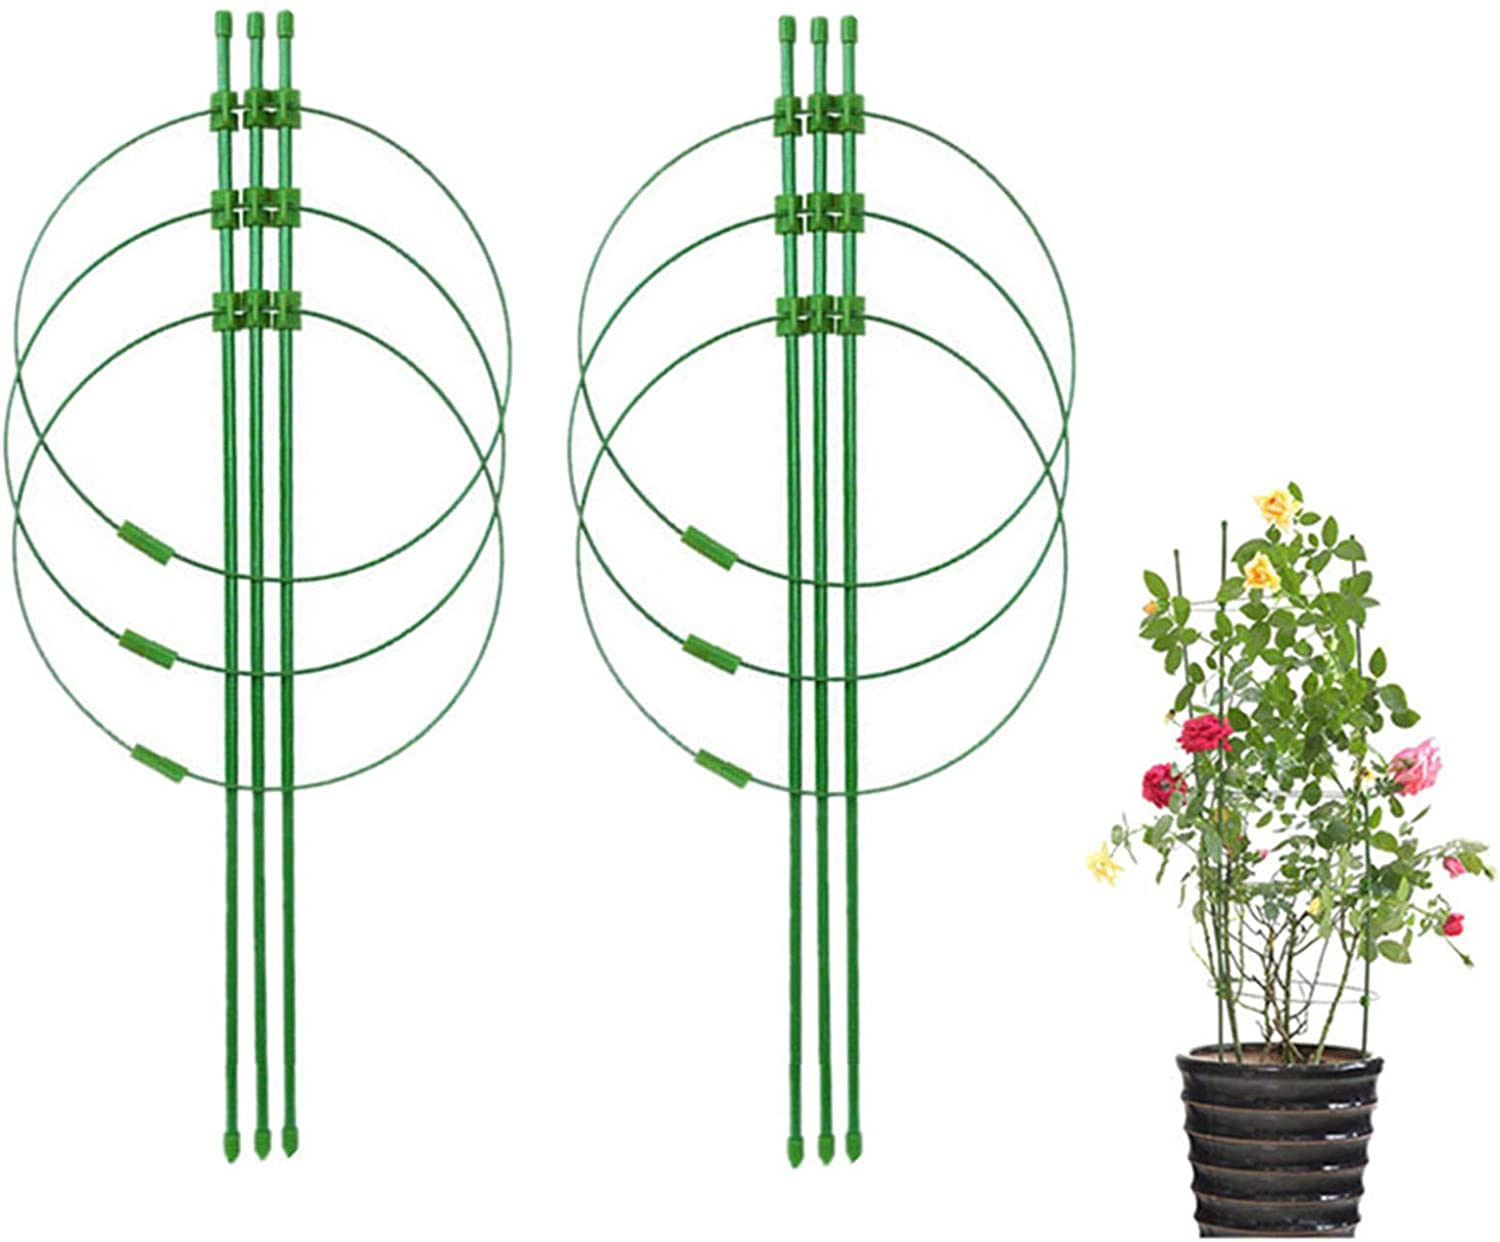 DoubleWood Plant Support Cages 18 Inches Plant Cages with 3 Adjustable Rings Vine Trellis Support Plants Holder Stand Small Pot Plant Trellis for Home Garden Balcony (2PACK)